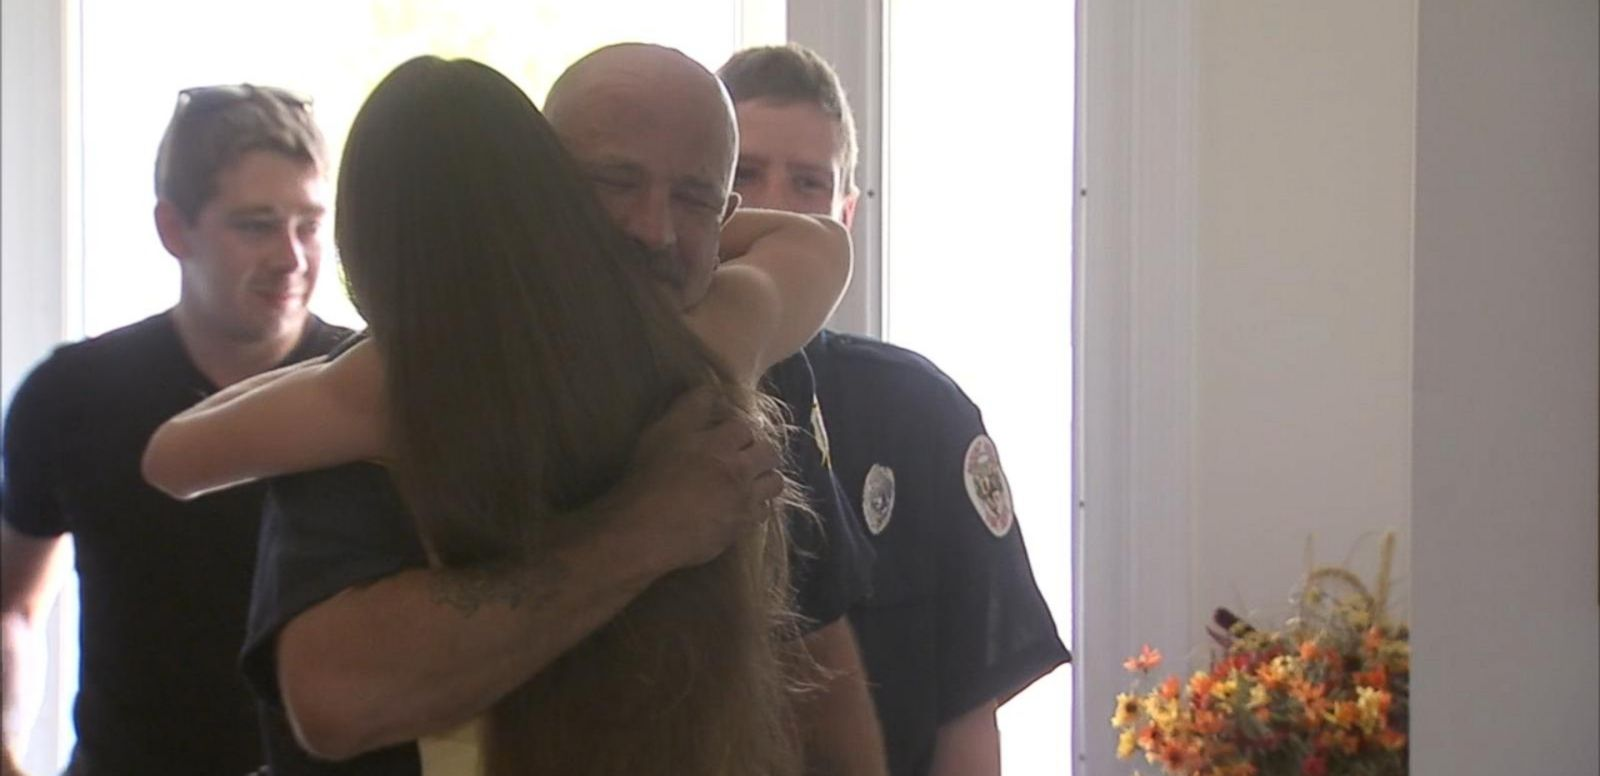 VIDEO: After waitress Liz Woodward paid for their meal, New Jersey firefighters Tim Young and Paul Hullings wanted to return the generosity by raising money for a handicap accessible van for her father.